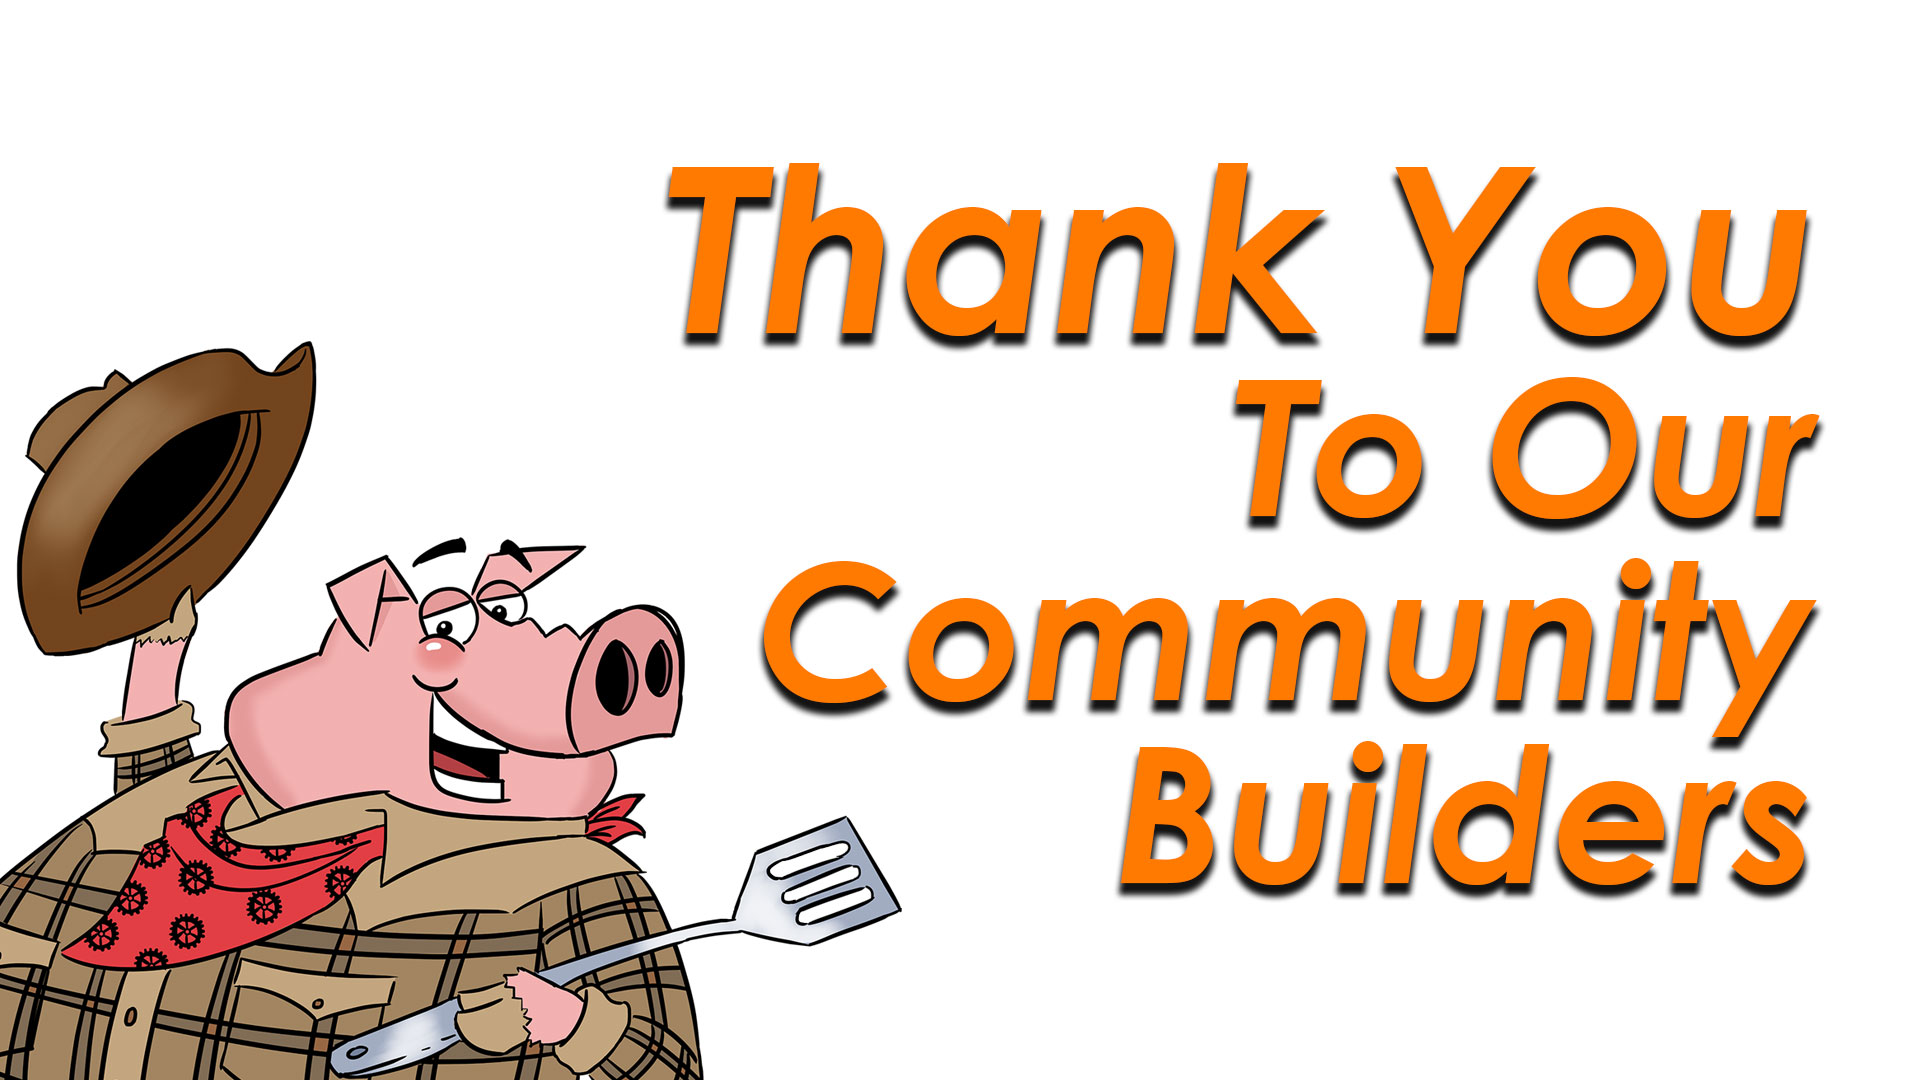 Thank you to our Community Builders